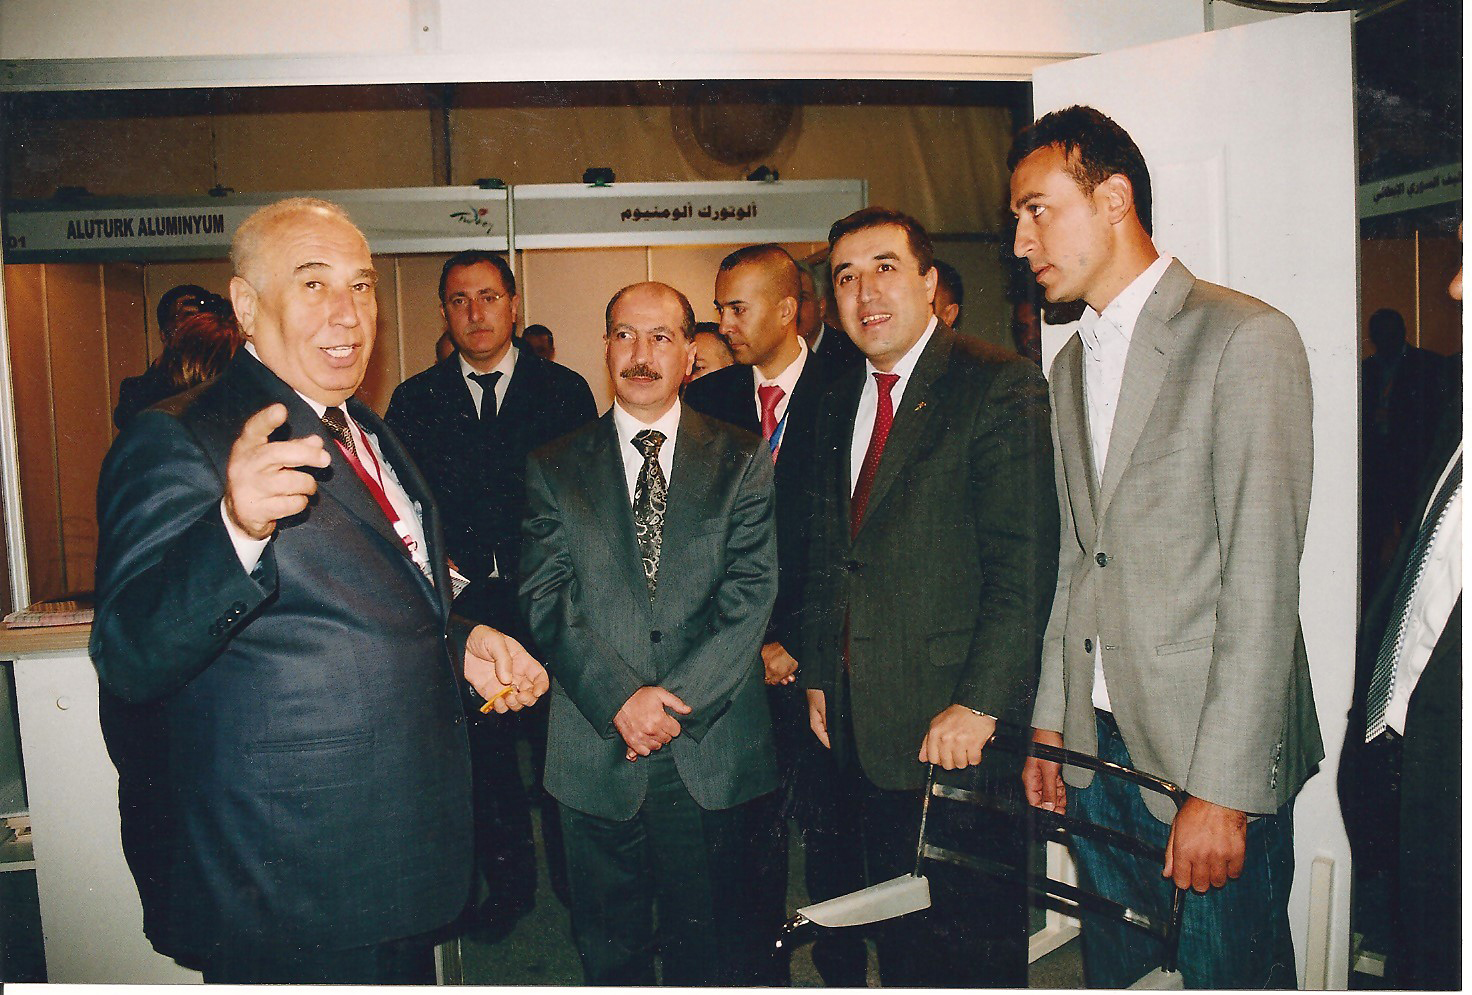 SYRIA TRADE MINISTER COMING OUR FAIR STAND